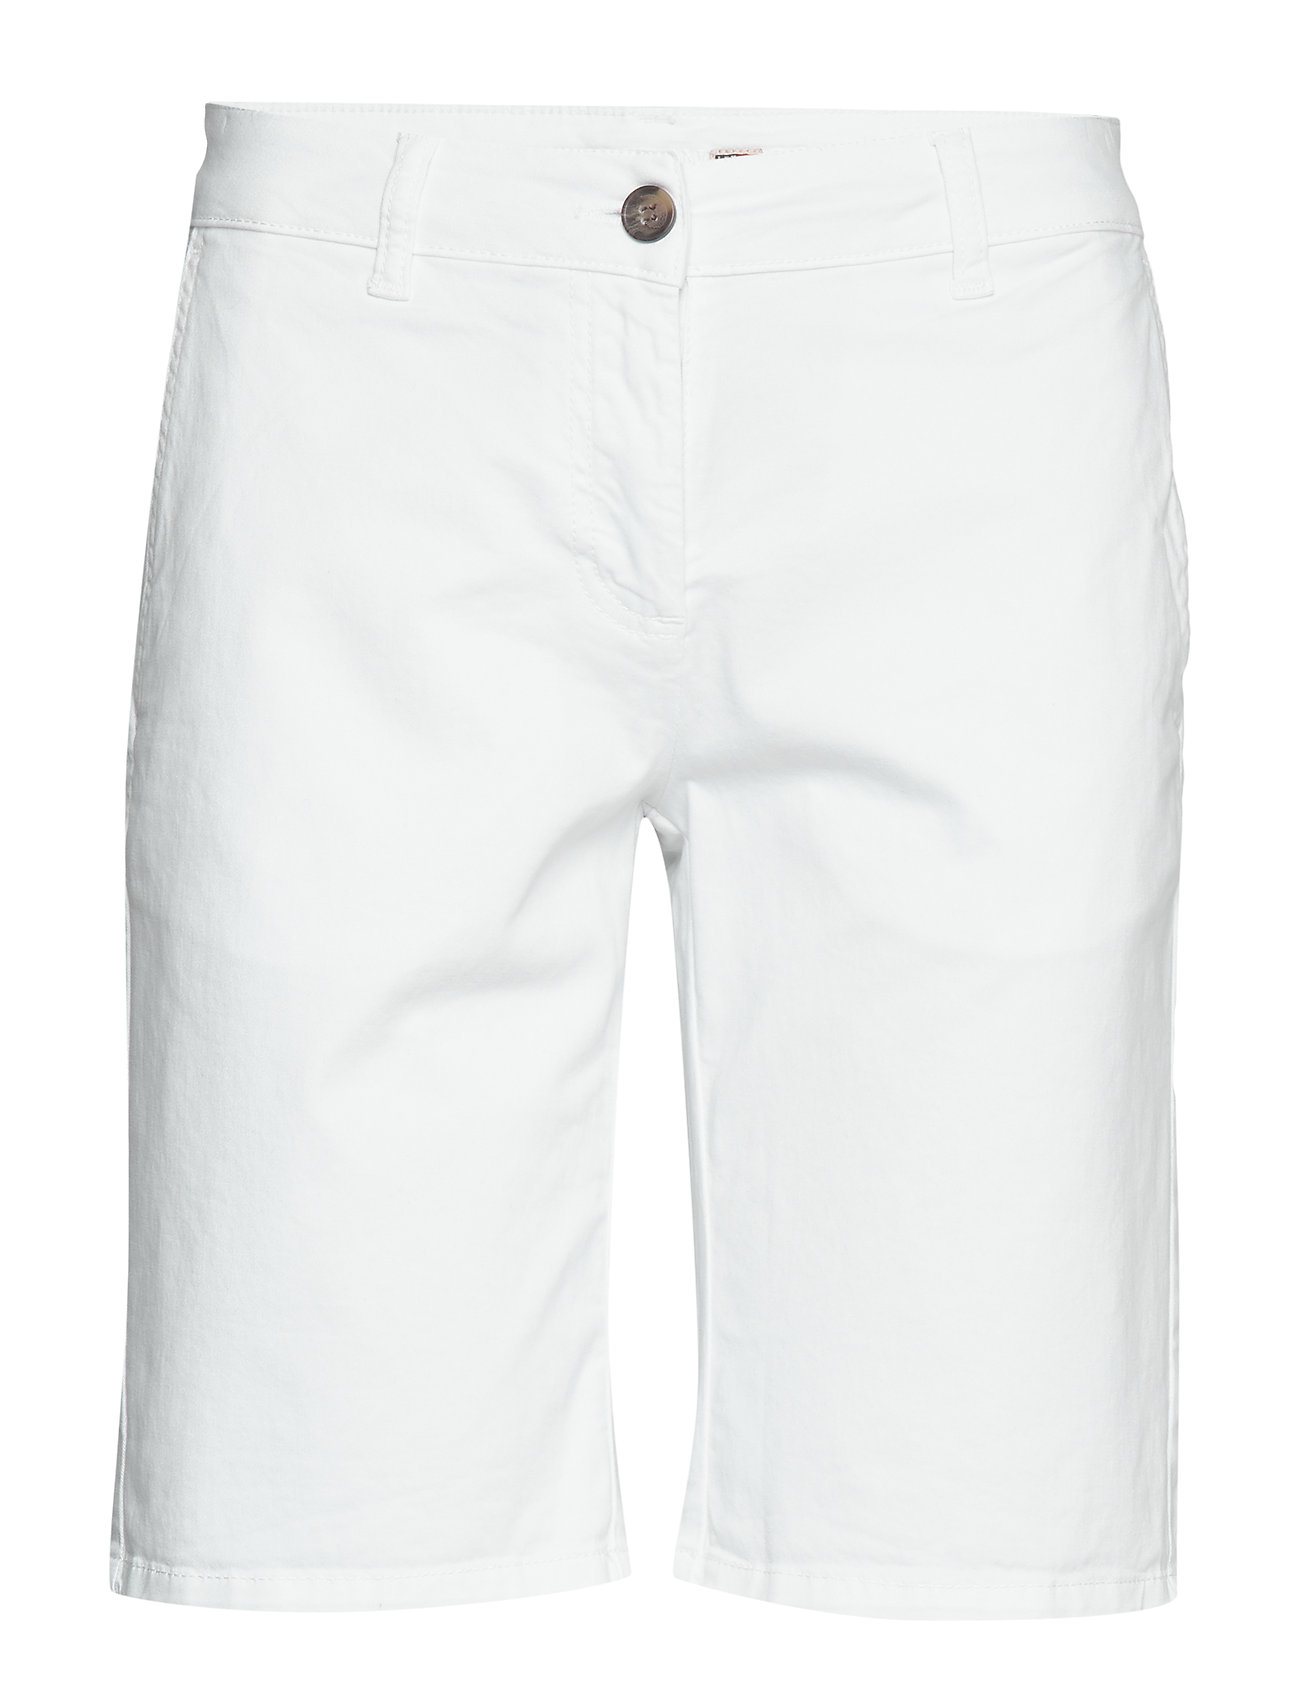 Lexington Clothing Mary Shorts - BRIGHT WHITE